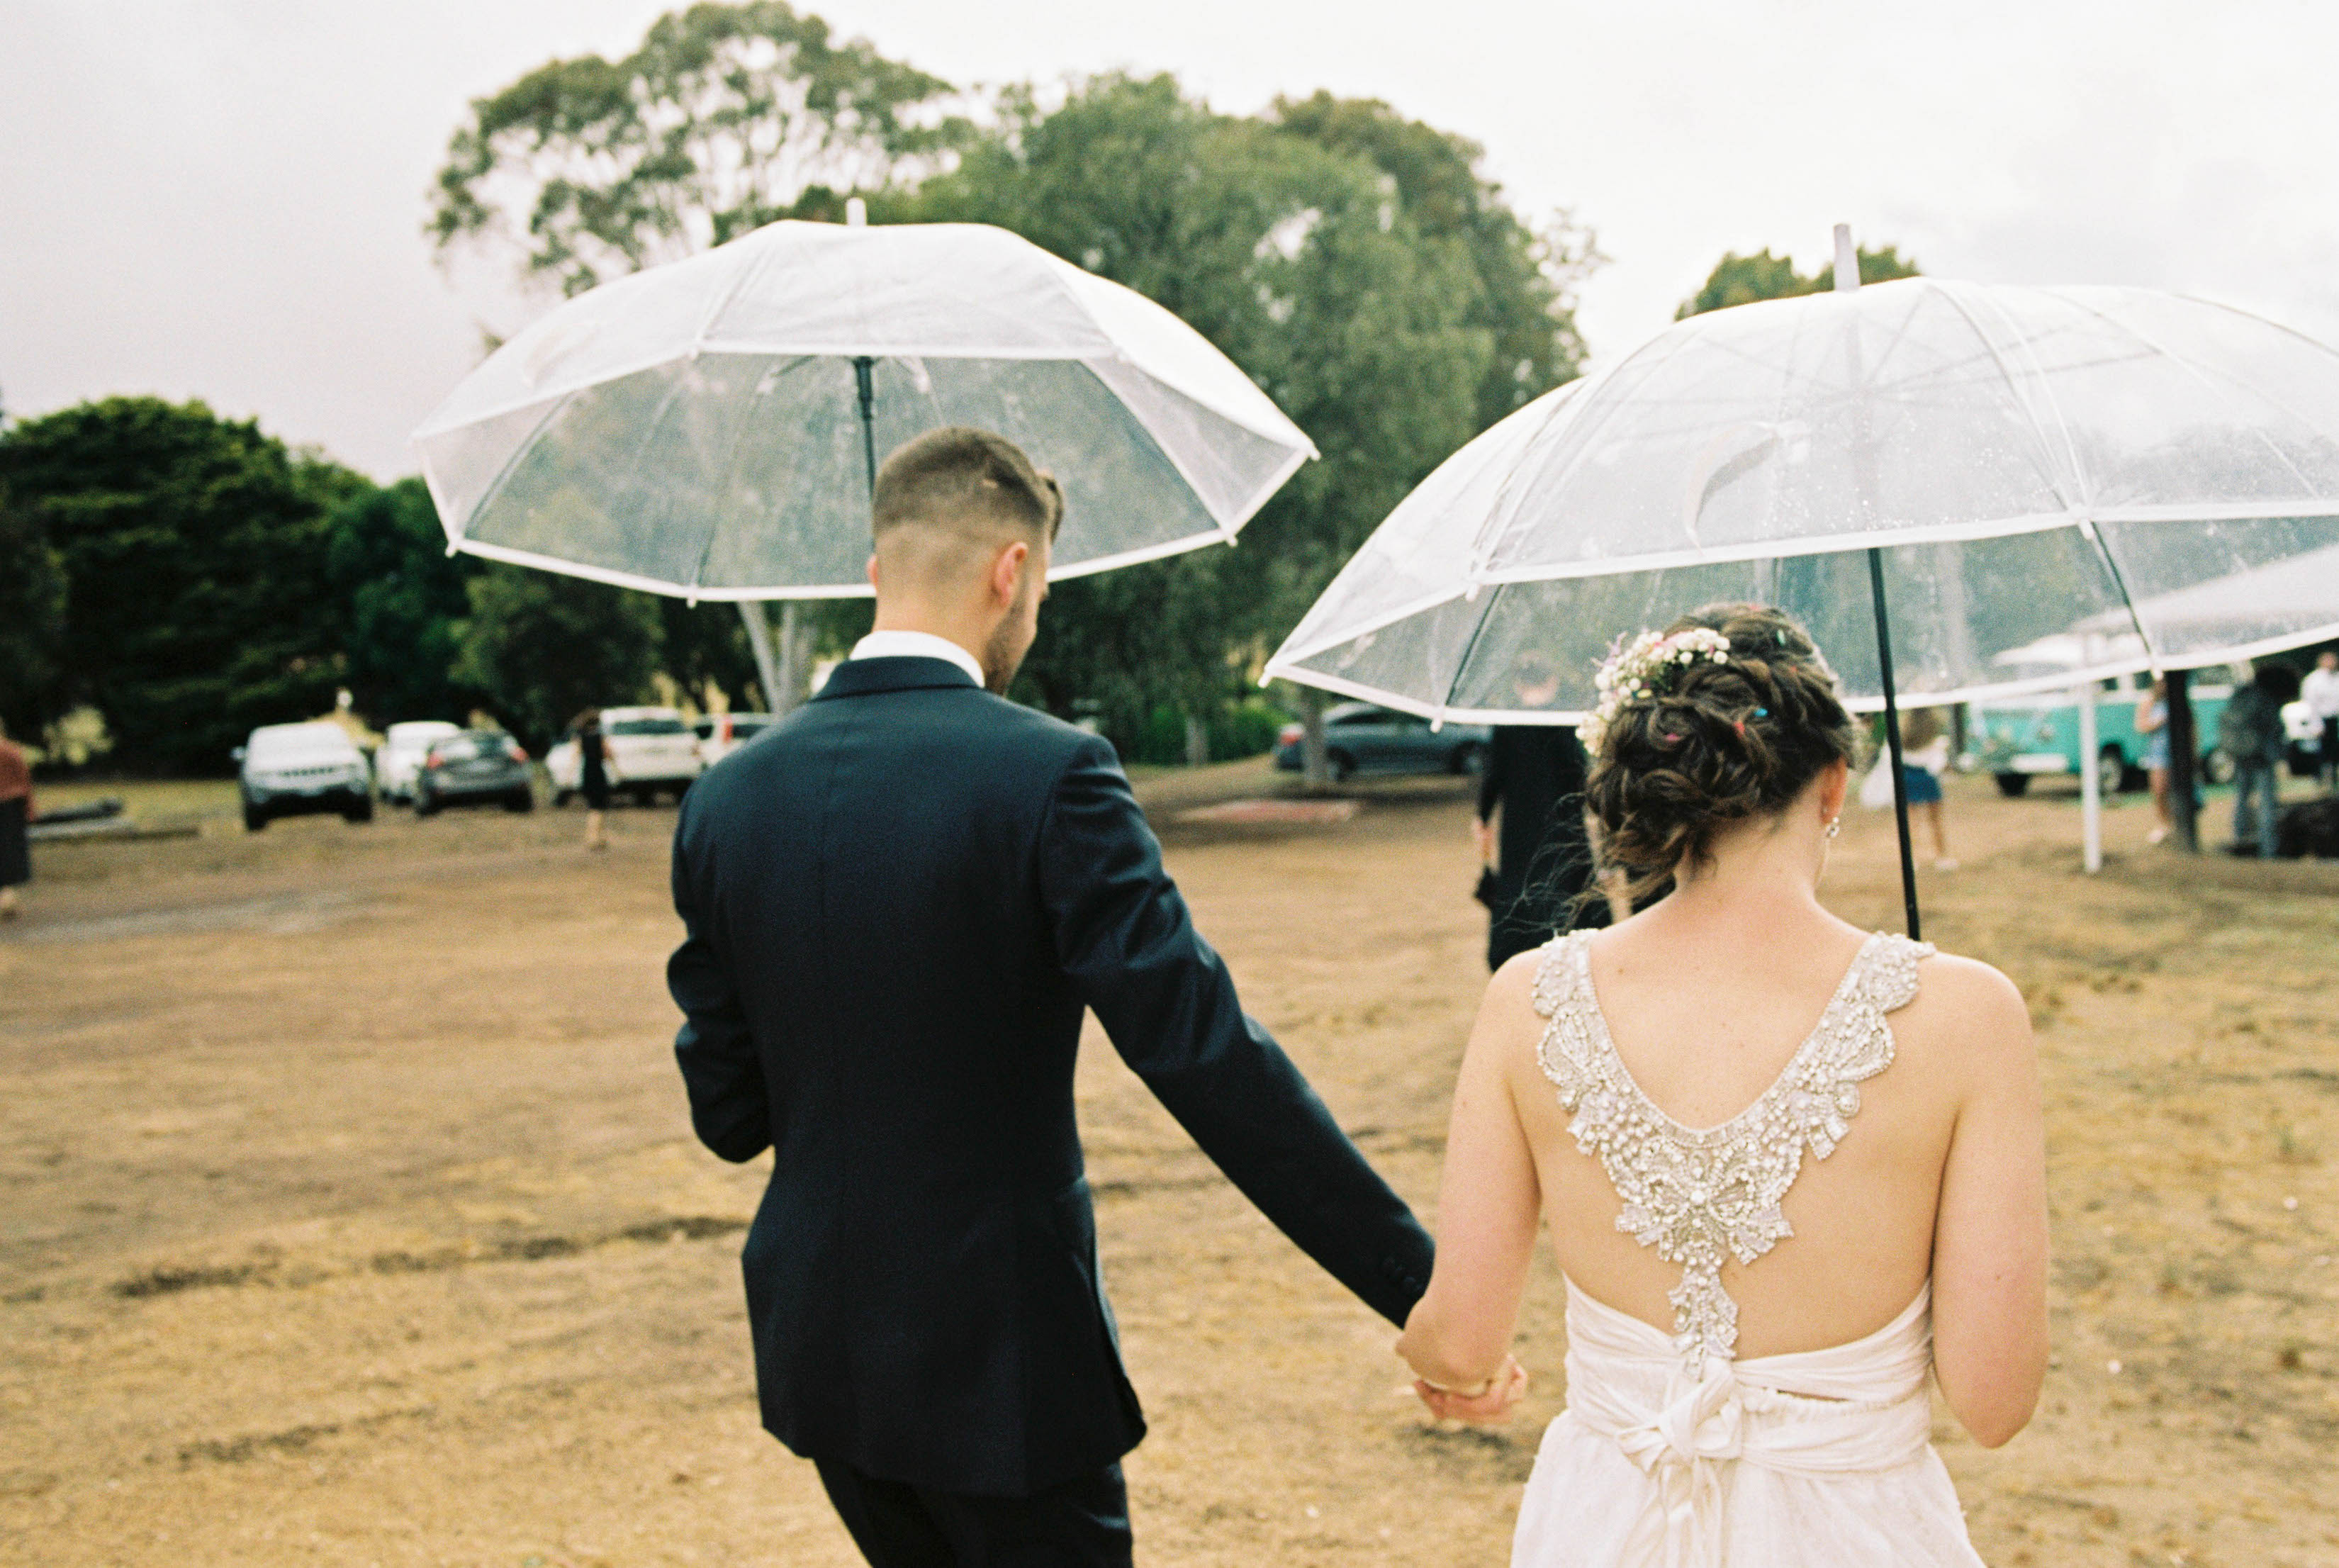 A photo of the bride & groom walking in the rain after their family farm portrait session